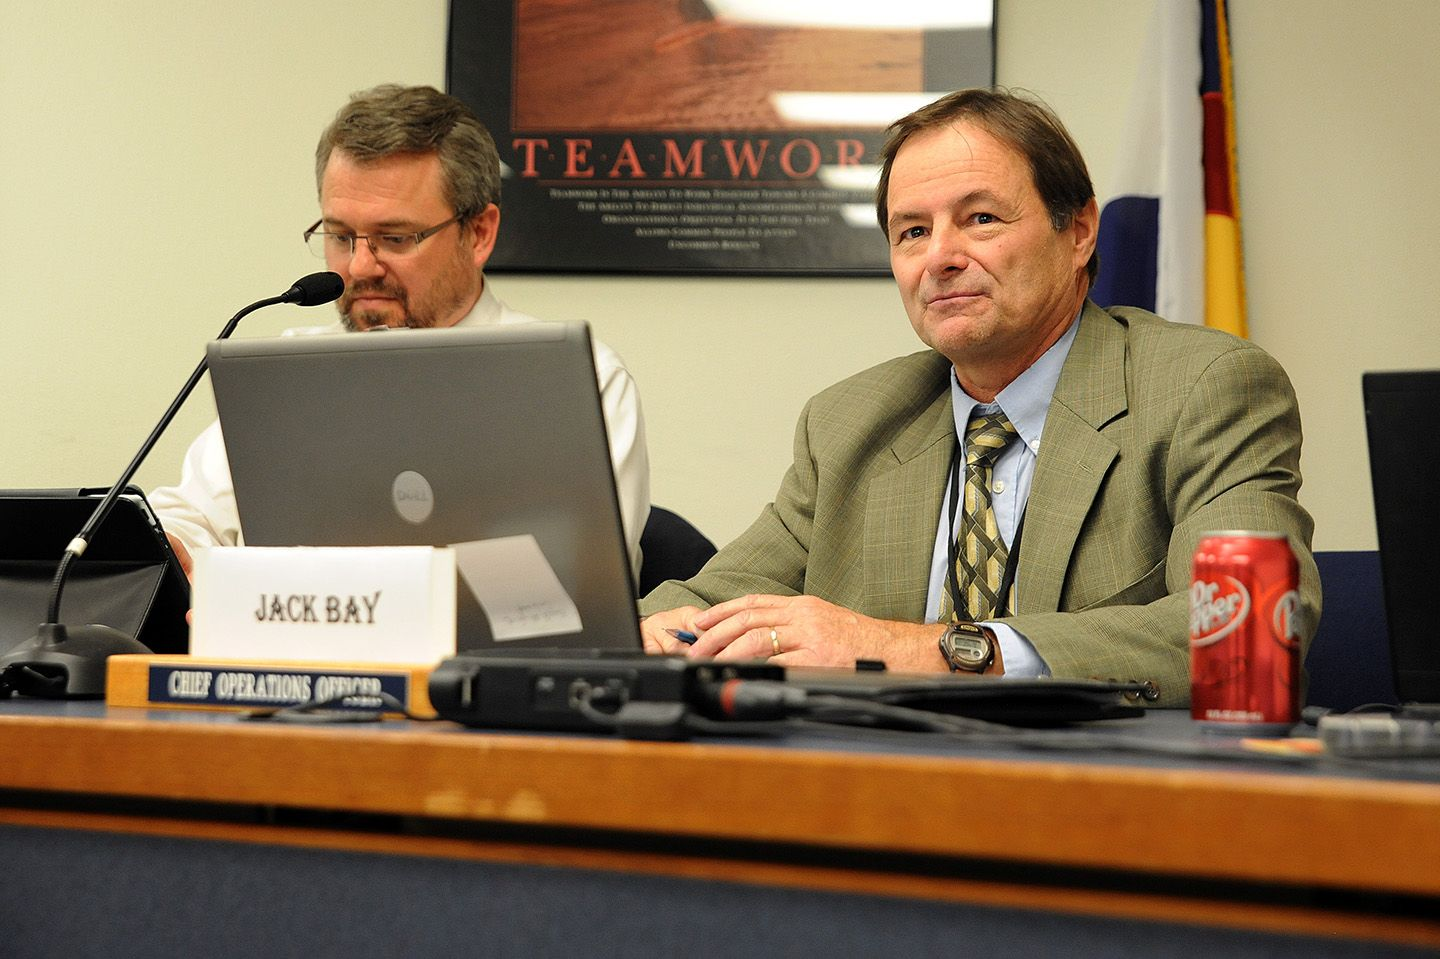 Jack Bay, chief operations officer, introduces himself Jan. 10 during a Board of Education meeting in Falcon School District 49.